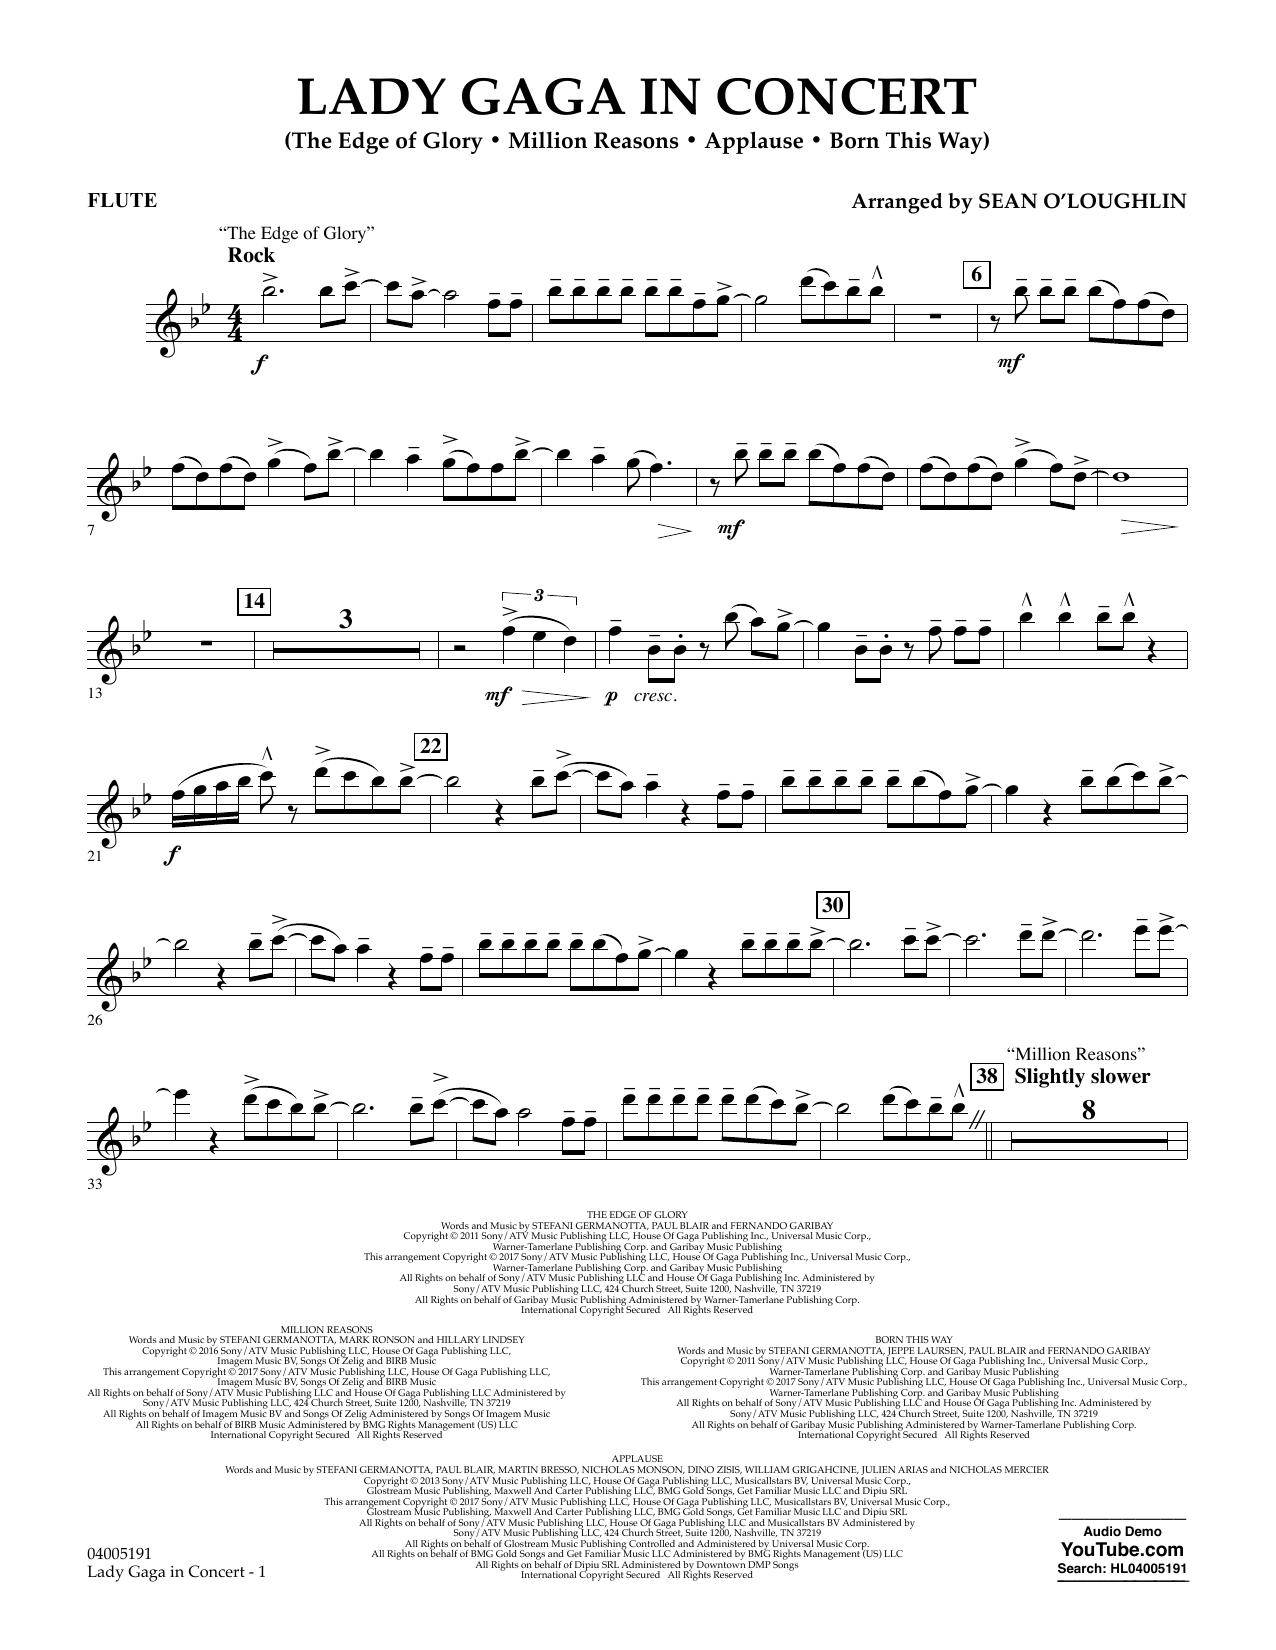 Lady Gaga in Concert - Flute (Concert Band)